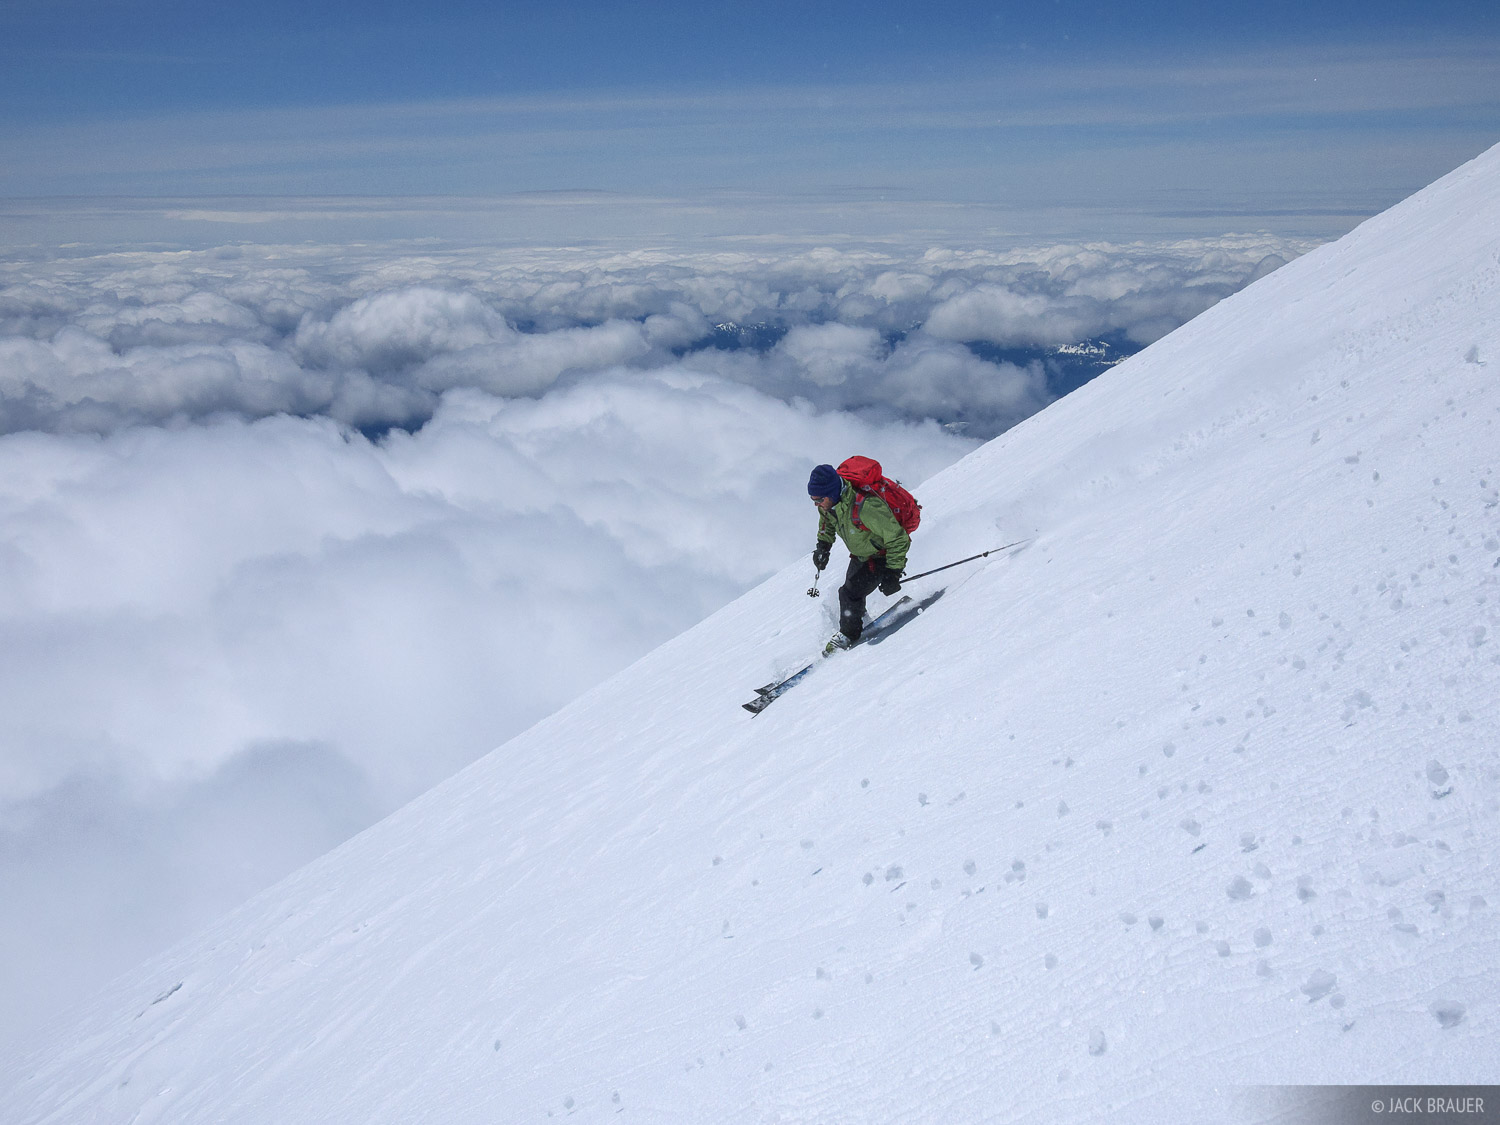 Scott McCurdy skis down Mt. Adams, a 12,276 ft. volcano in Washington - May.